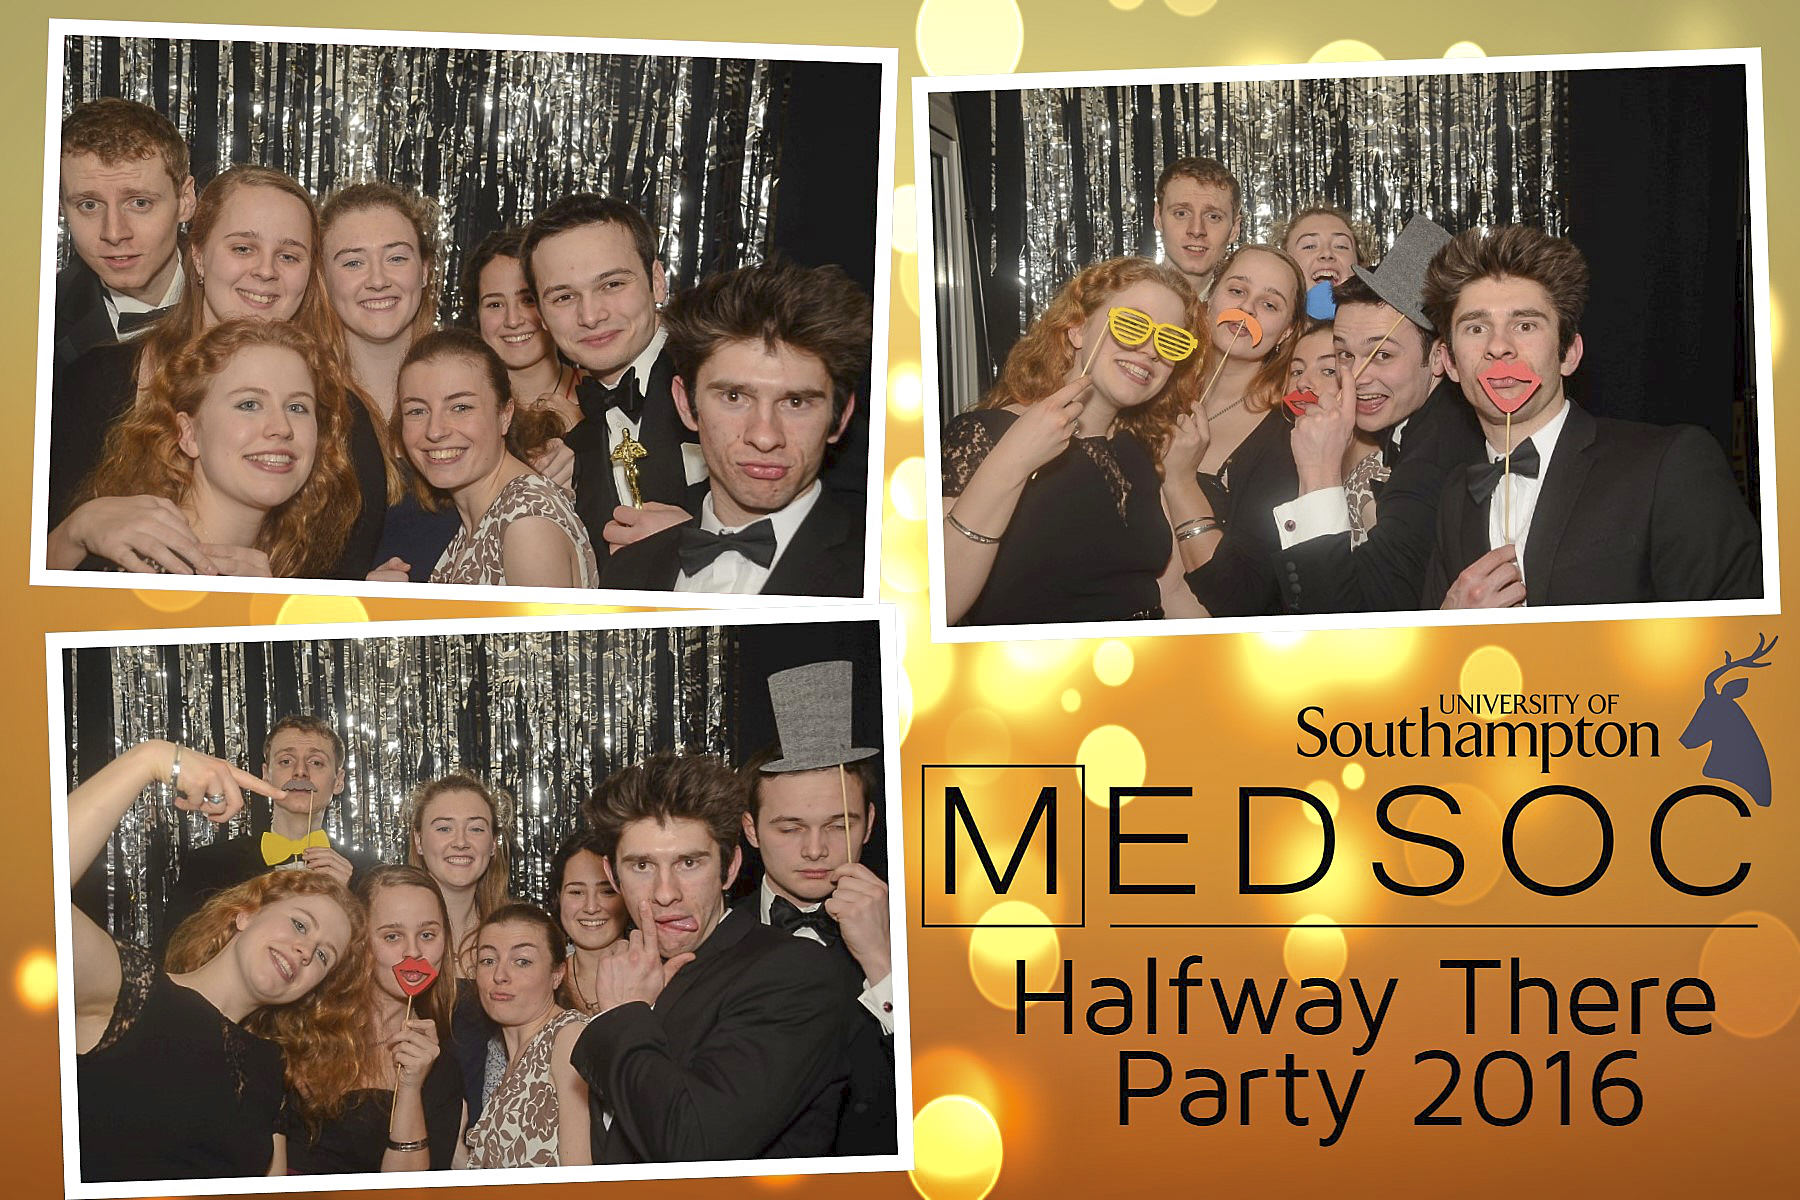 MedSoc Halfway There Party 2016 DS001145.jpg